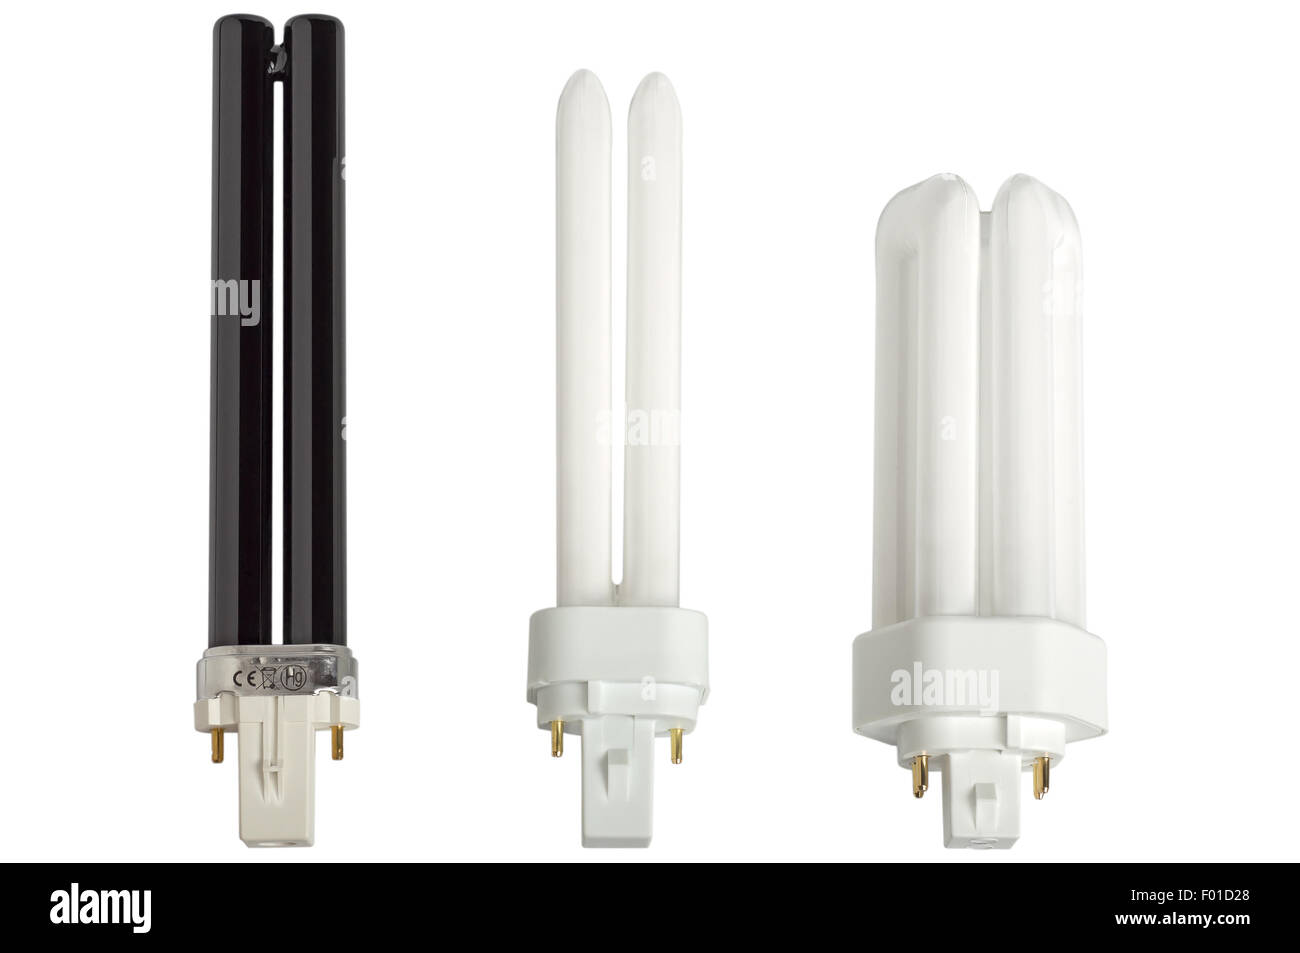 Compact fluorescent lamps. Black ultraviolet (UV) bulb. Isolated on white background. - Stock Image